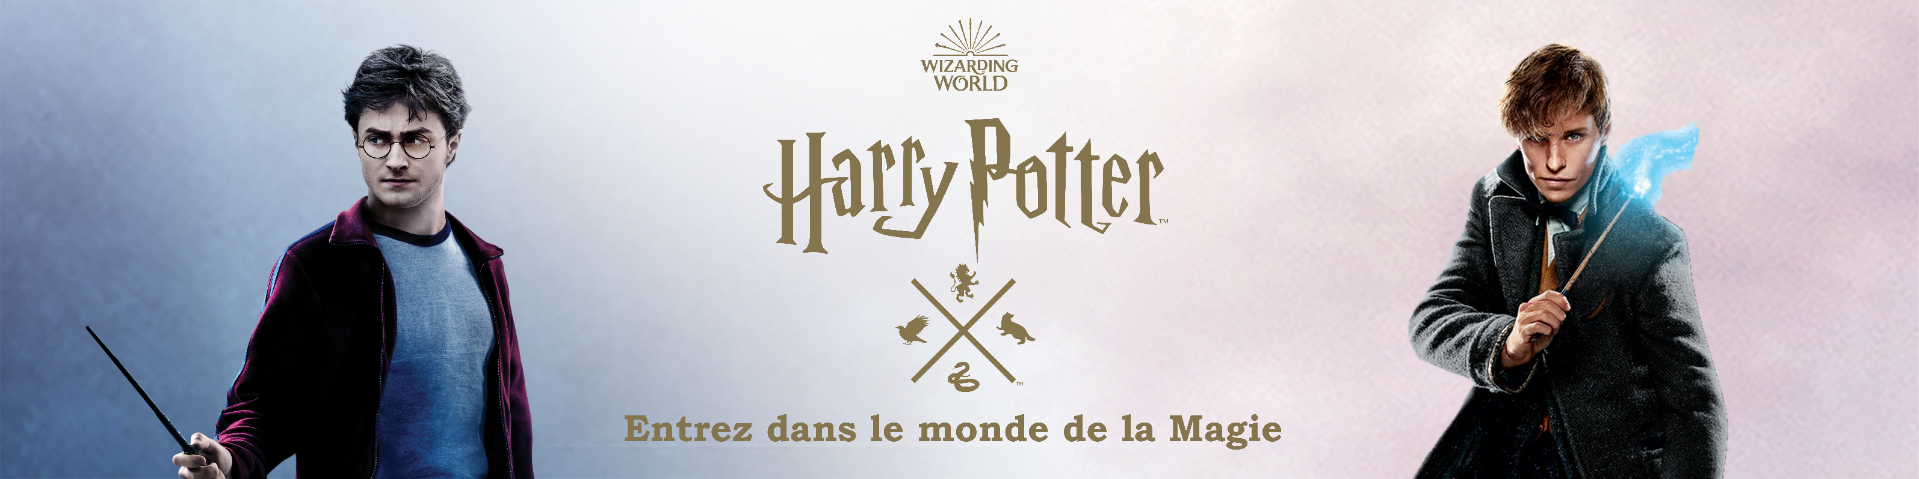 La boutique officielle Wizarding World - Harry Potter - Les Animaux Fantastiques